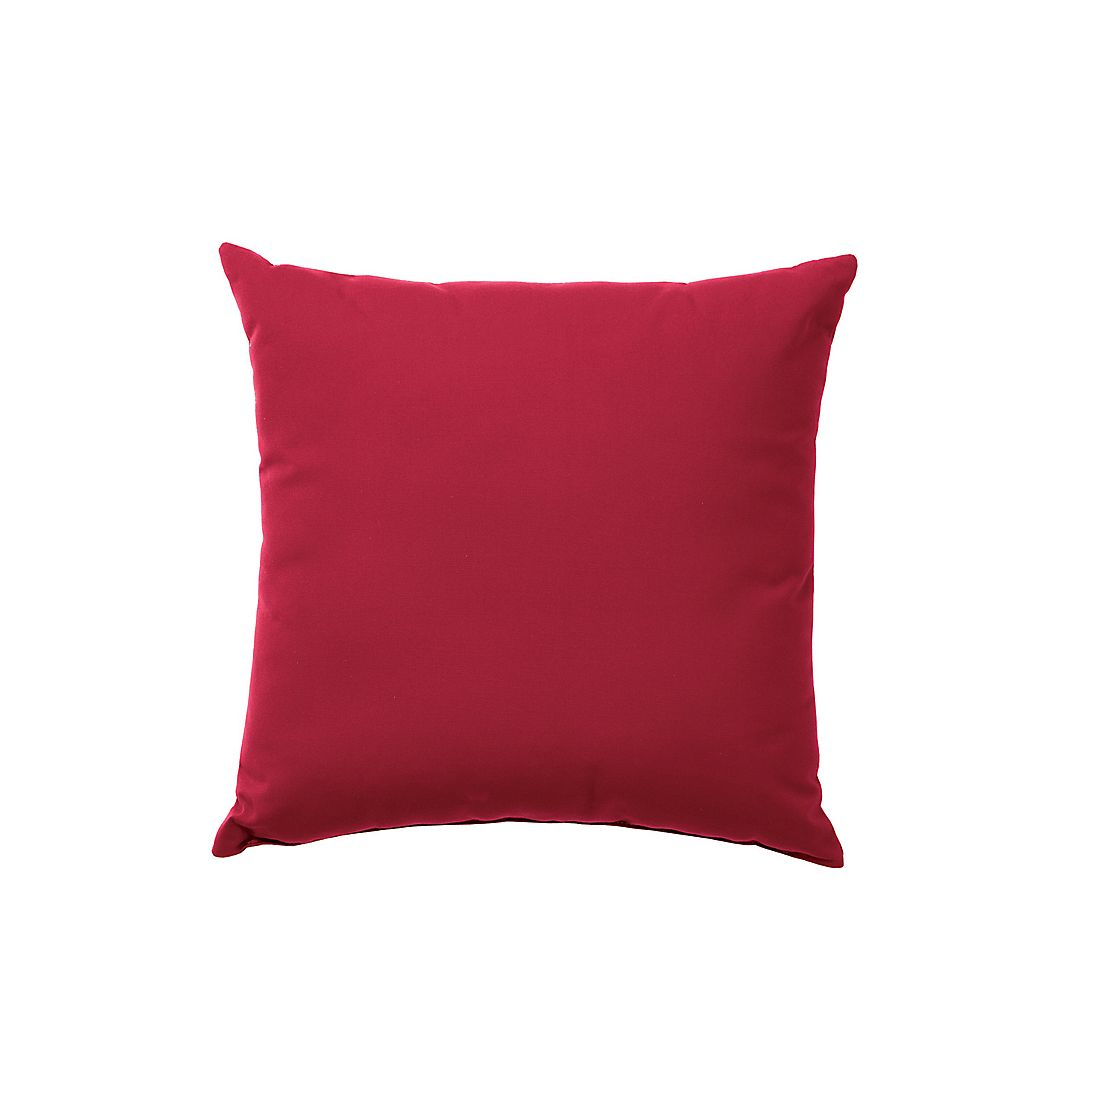 Sunbrella Throw Pillows Clearance : + Rollover to zoom View Fullscreen